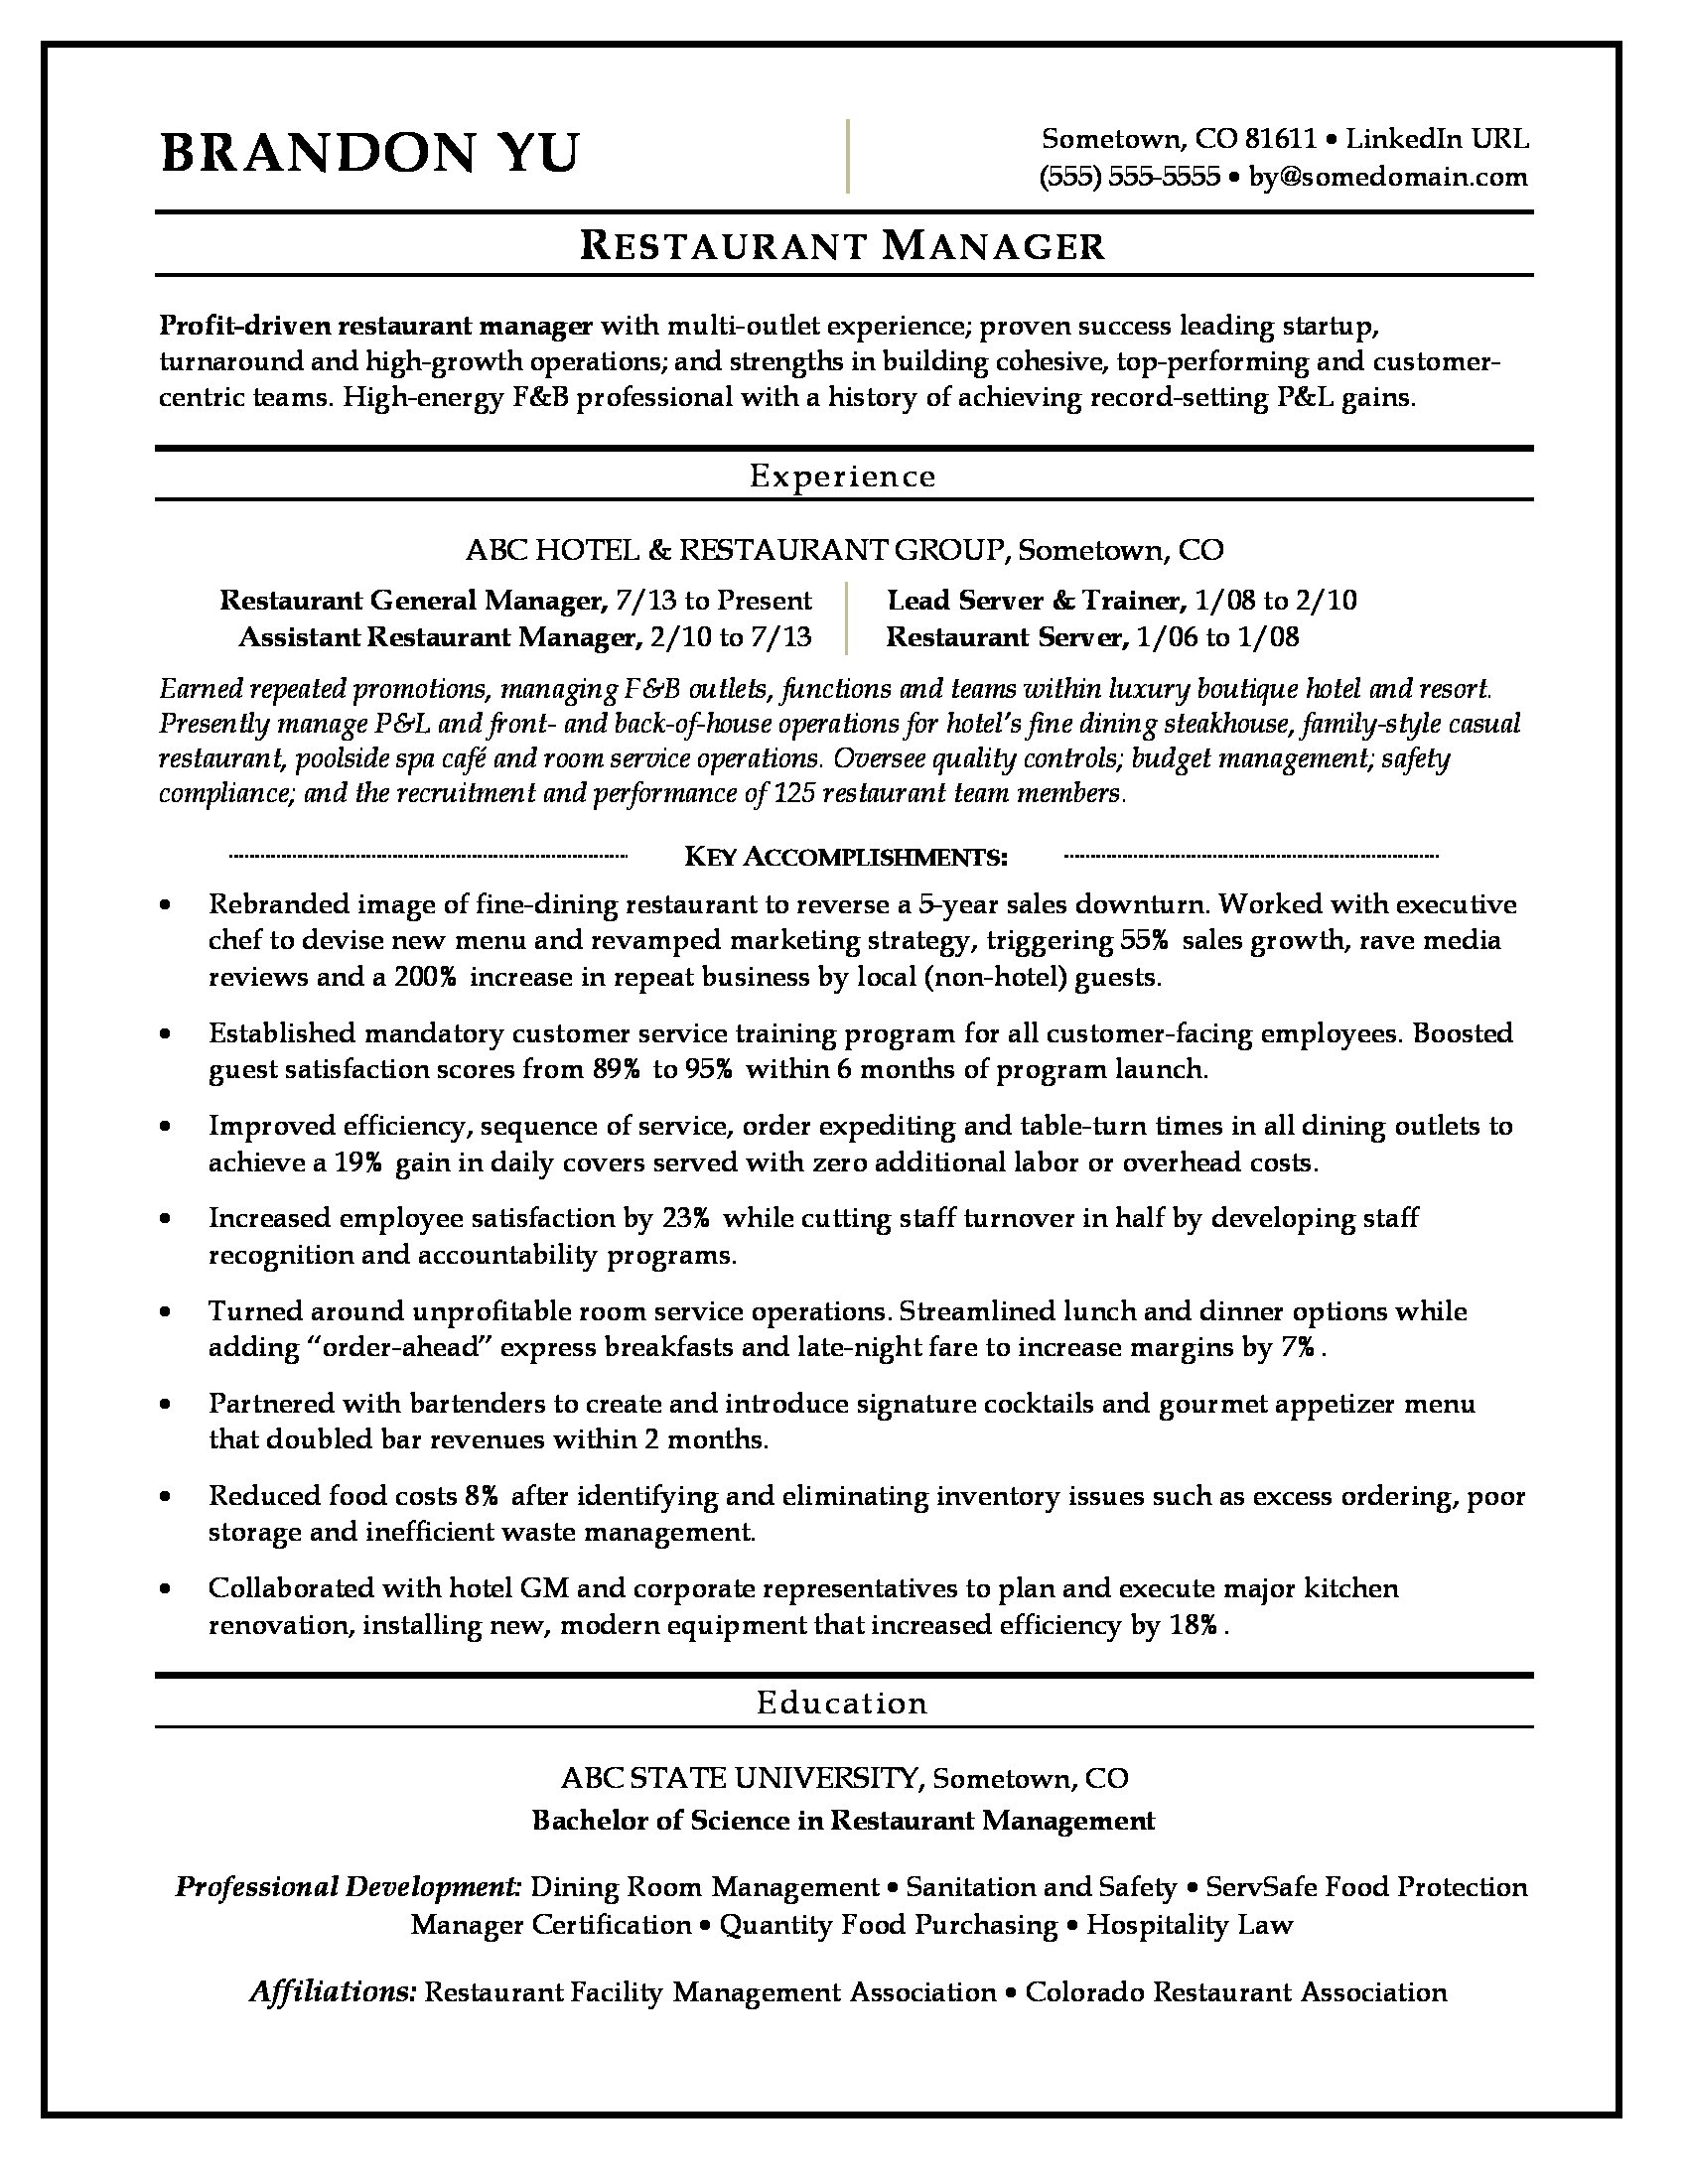 resume hospitality, hospitality marketing manager resume samples ...